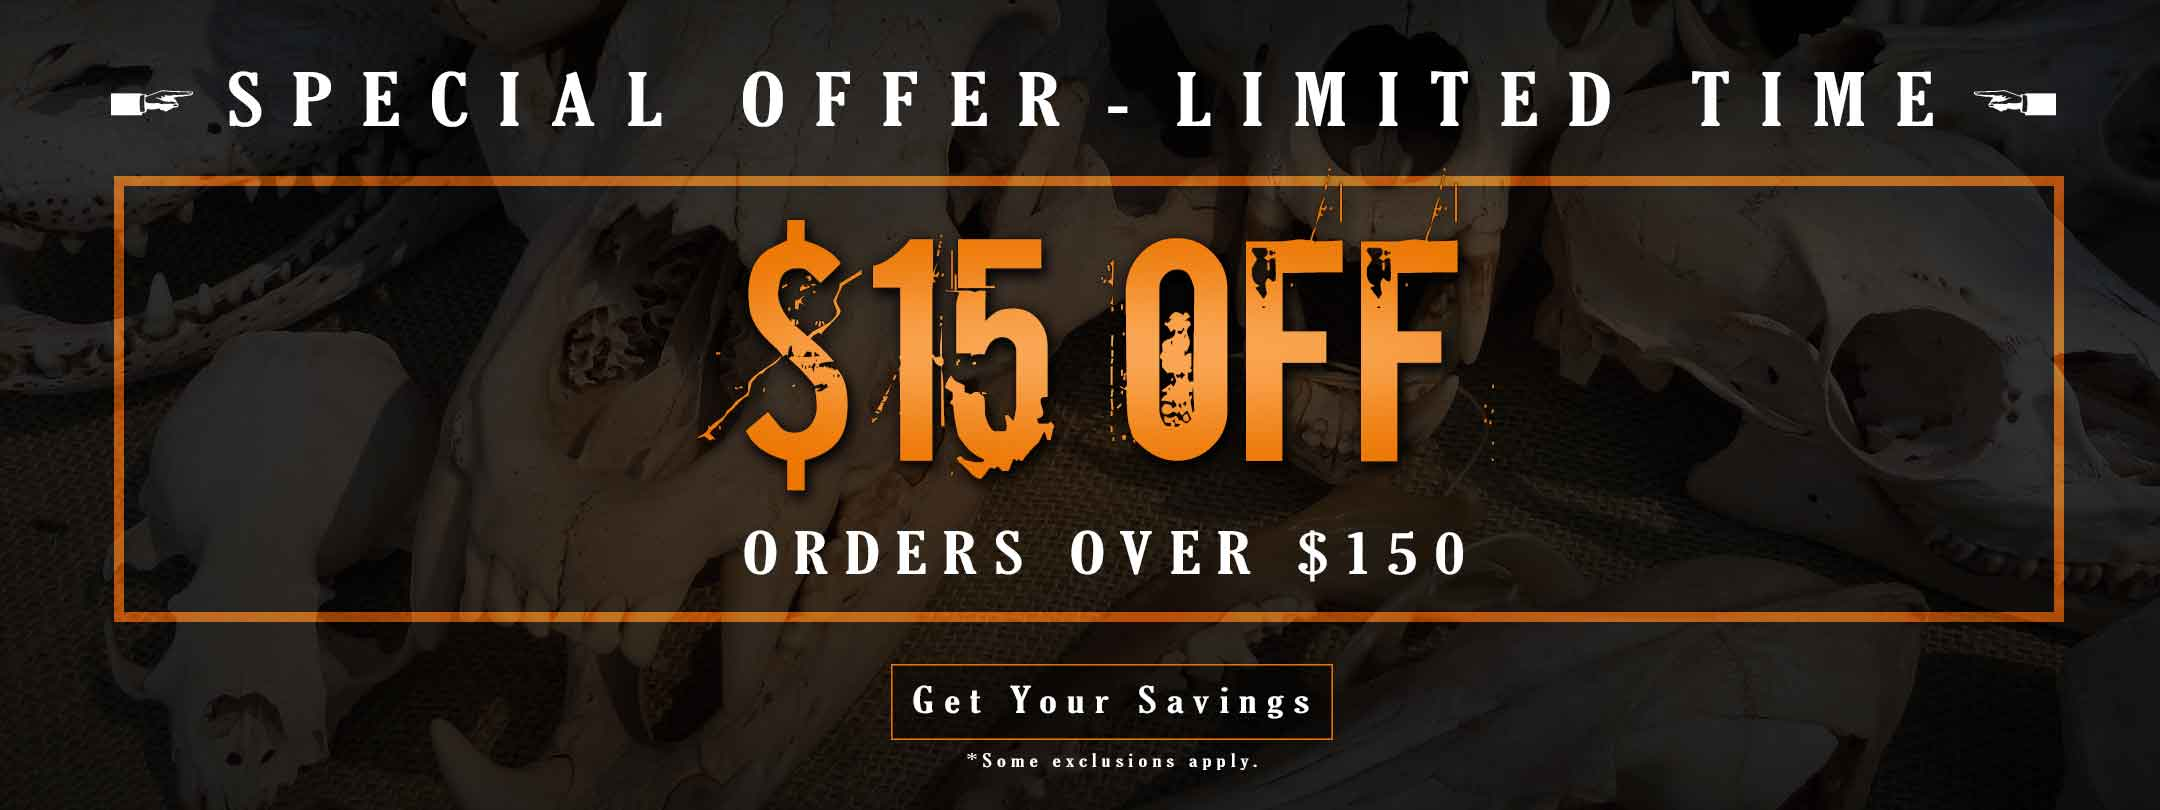 $15 OFF Orders Over $150 - Get the Details!